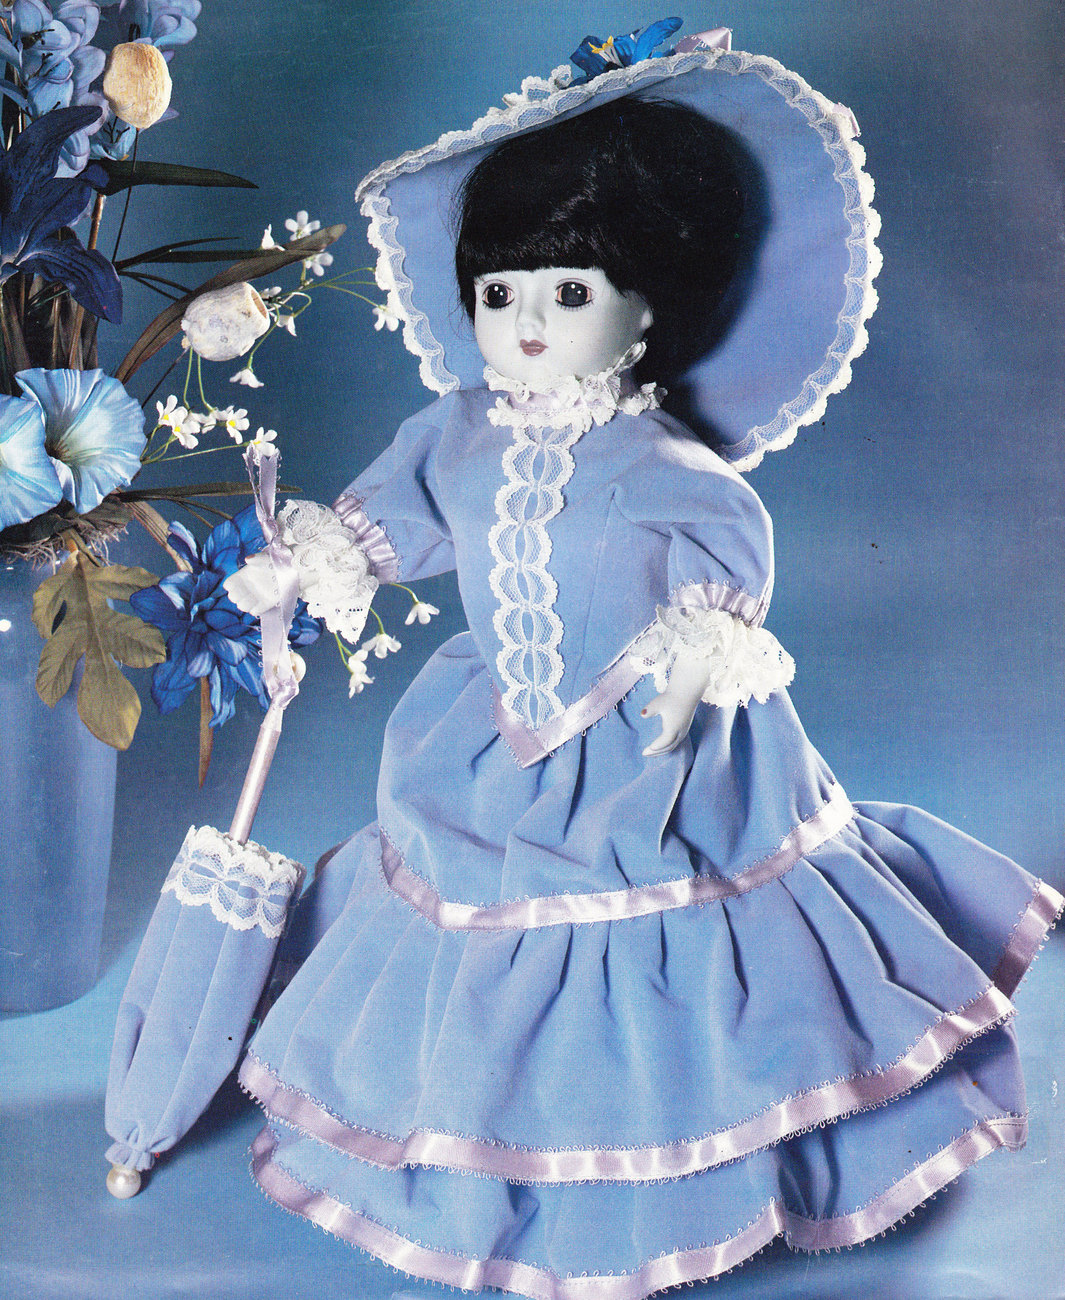 DOLL MAKING SHOWCASE OF DOLLS DOLL CLOTHES PATTERNS - $7.50